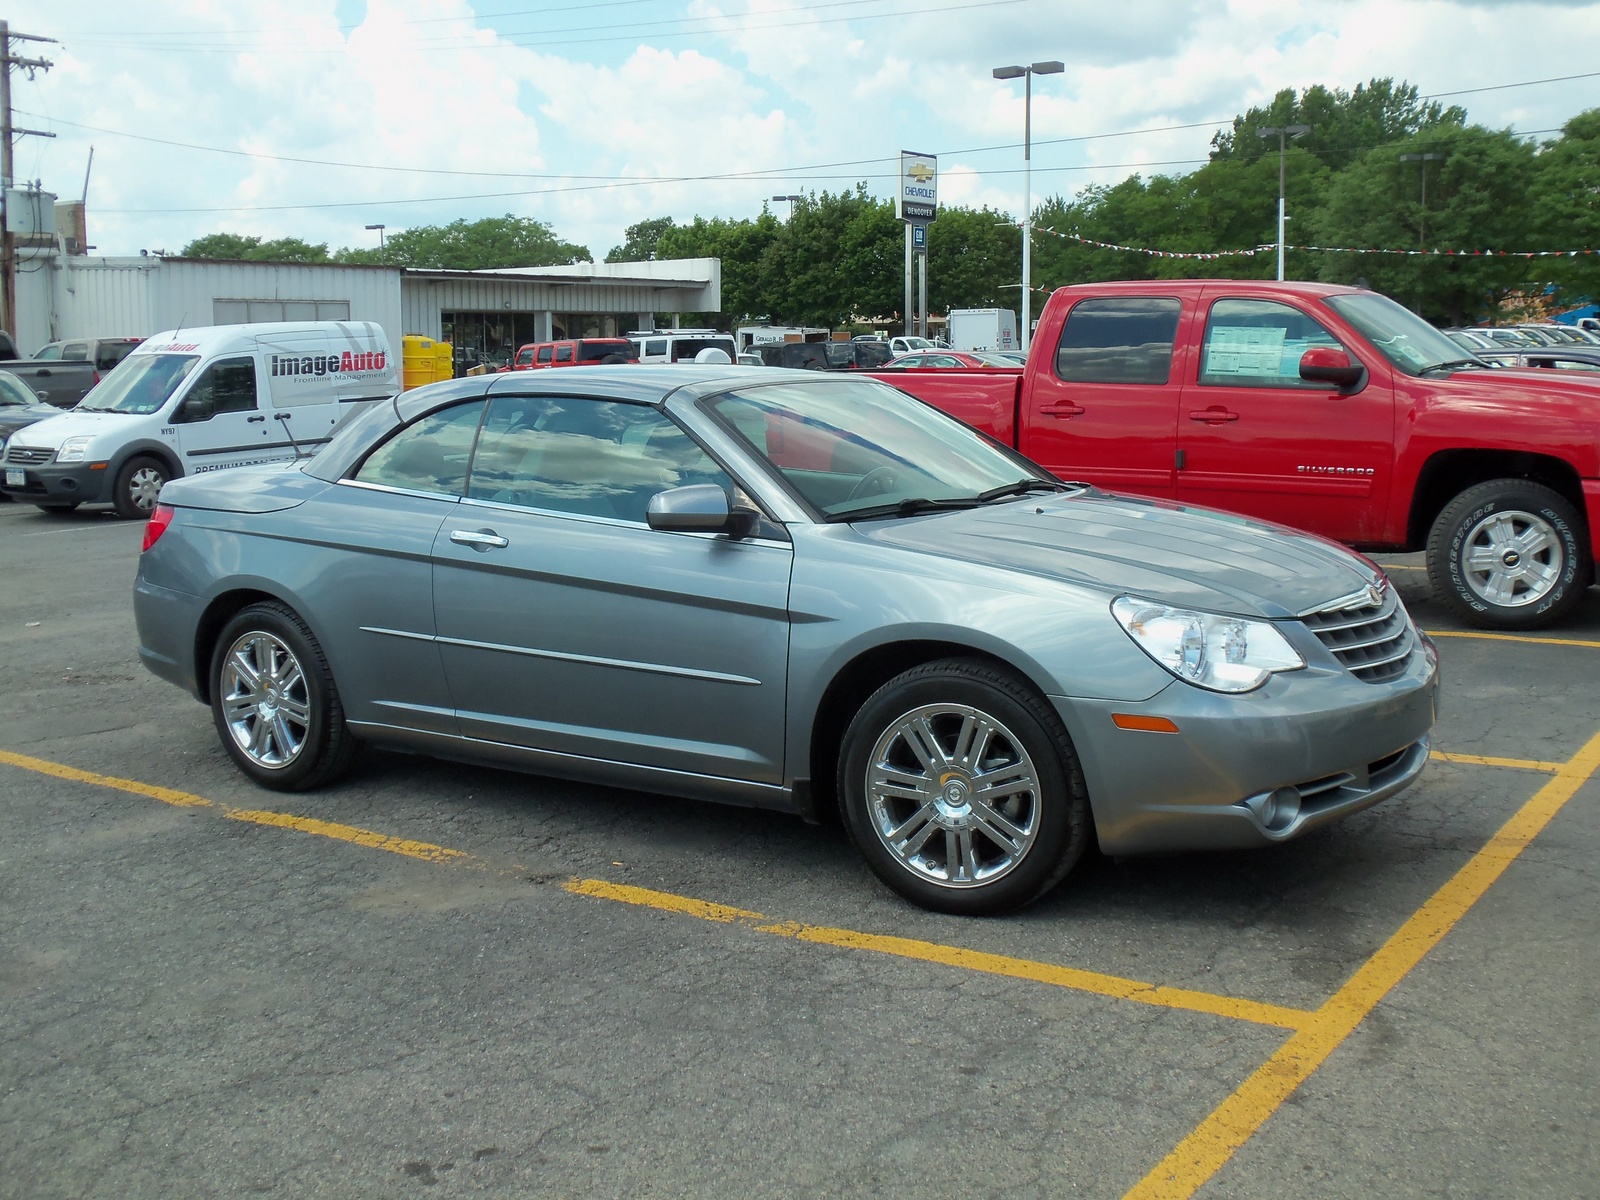 2008 chrysler sebring limited convertible profile exterior. Cars Review. Best American Auto & Cars Review